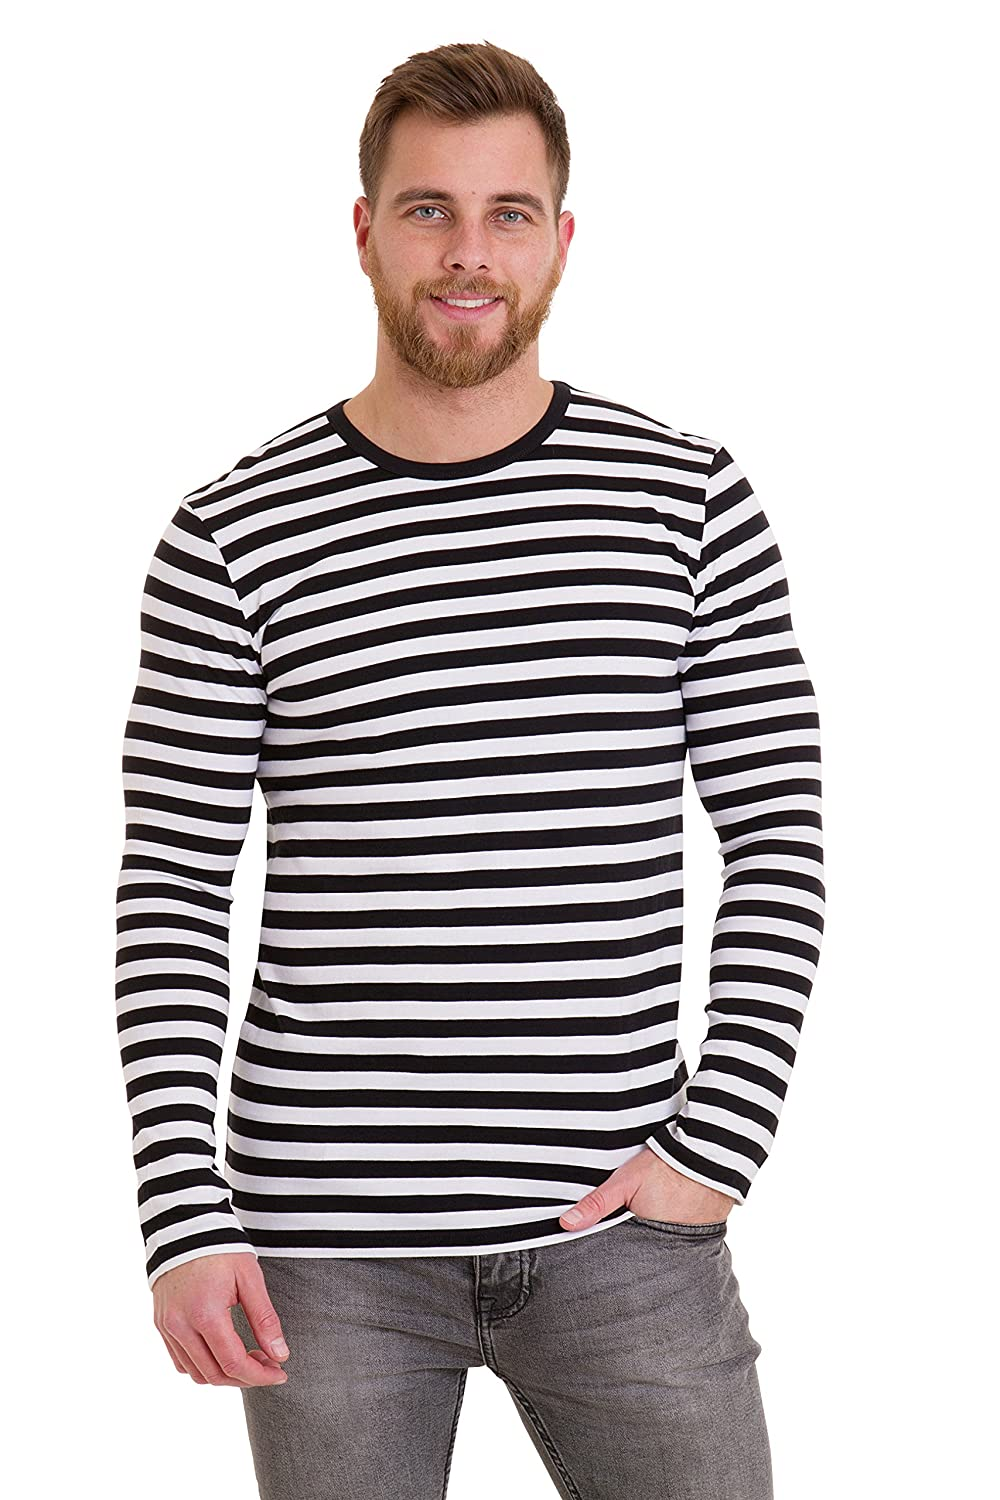 1940s Style Mens Shirts, Sweaters, Vests Mens 60s Retro Black & White Striped Long Sleeve T Shirt $19.95 AT vintagedancer.com